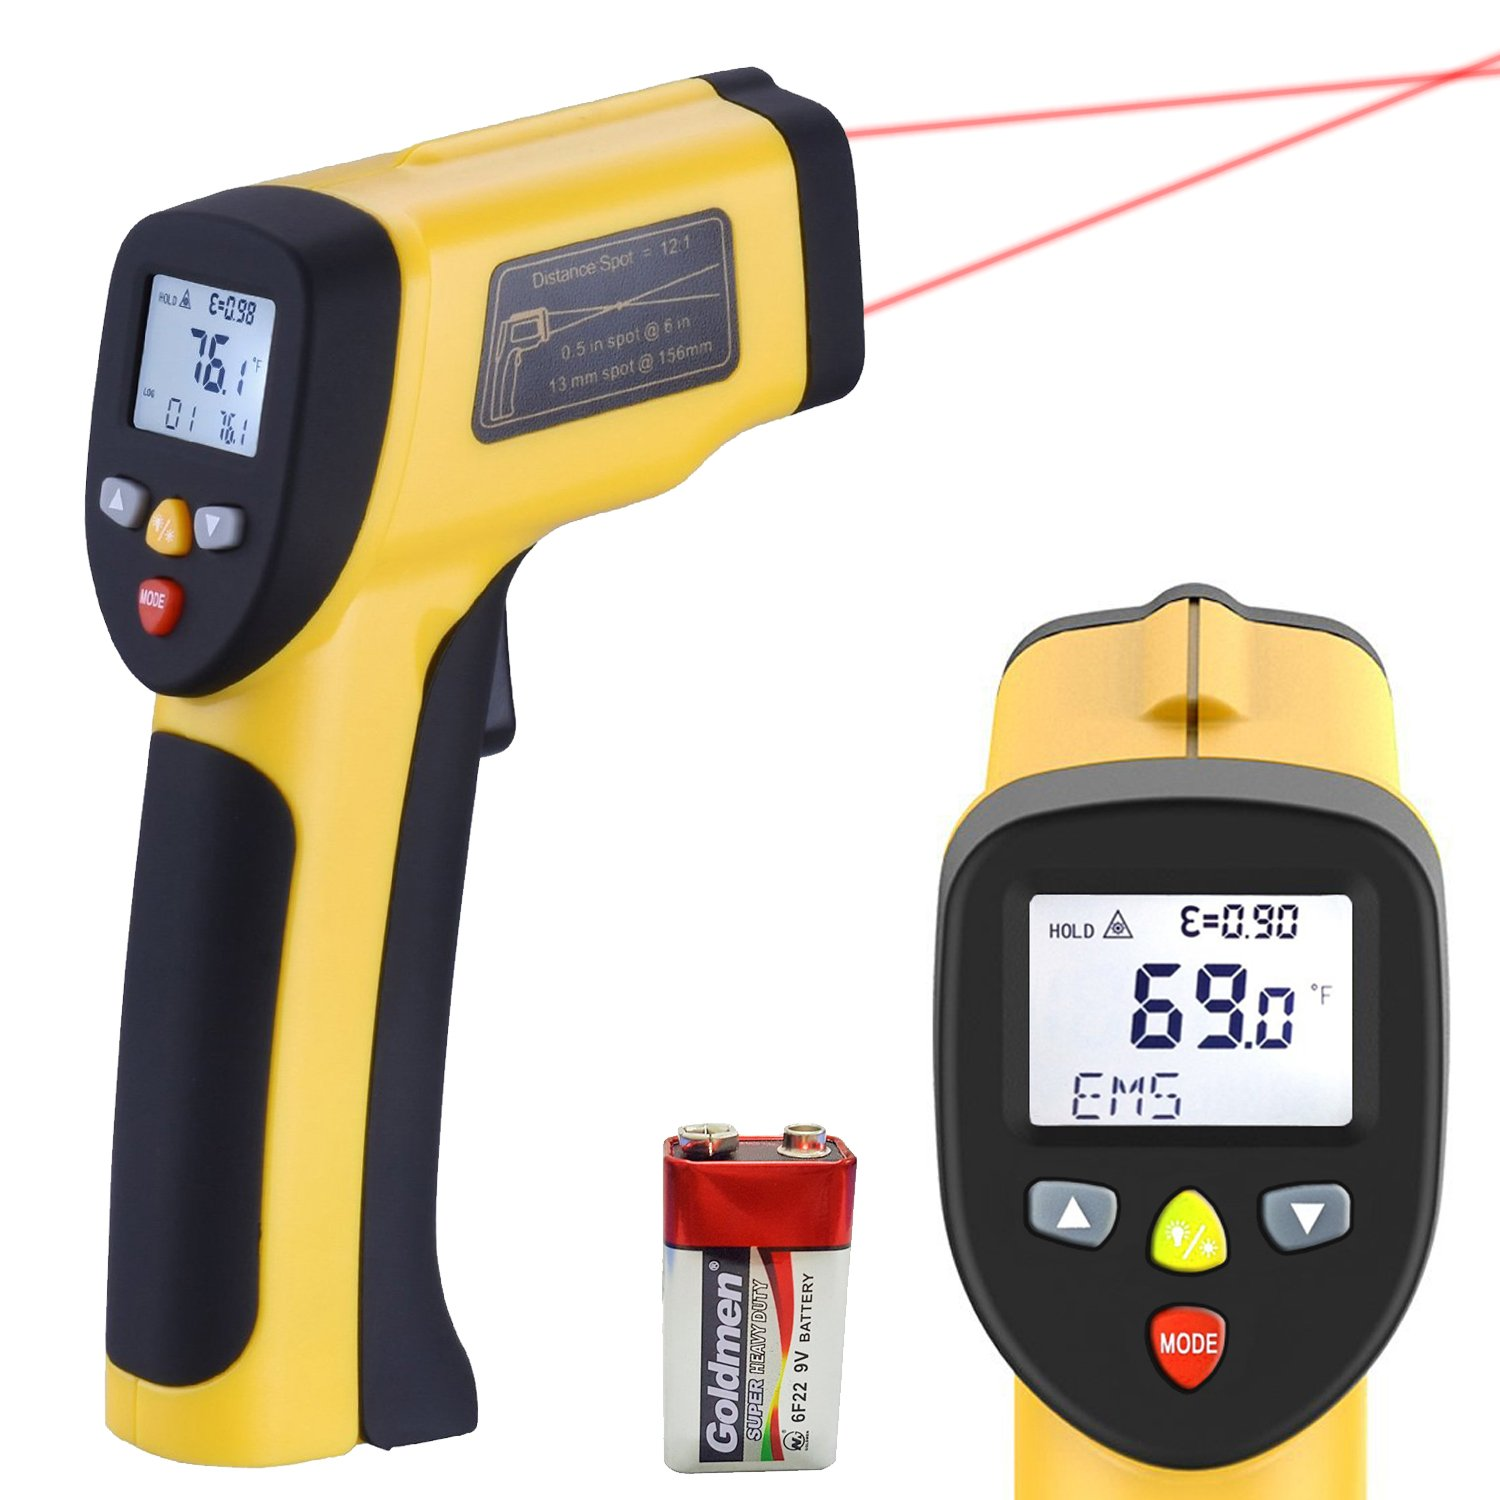 LURICO Infrared Thermometer, Helect Non-contact Digital Laser Temperature Gun (-58°F~1202°F/-50°C~650°C) - Accurate Digital Surface IR Thermometer with LCD Display (Battery Included)